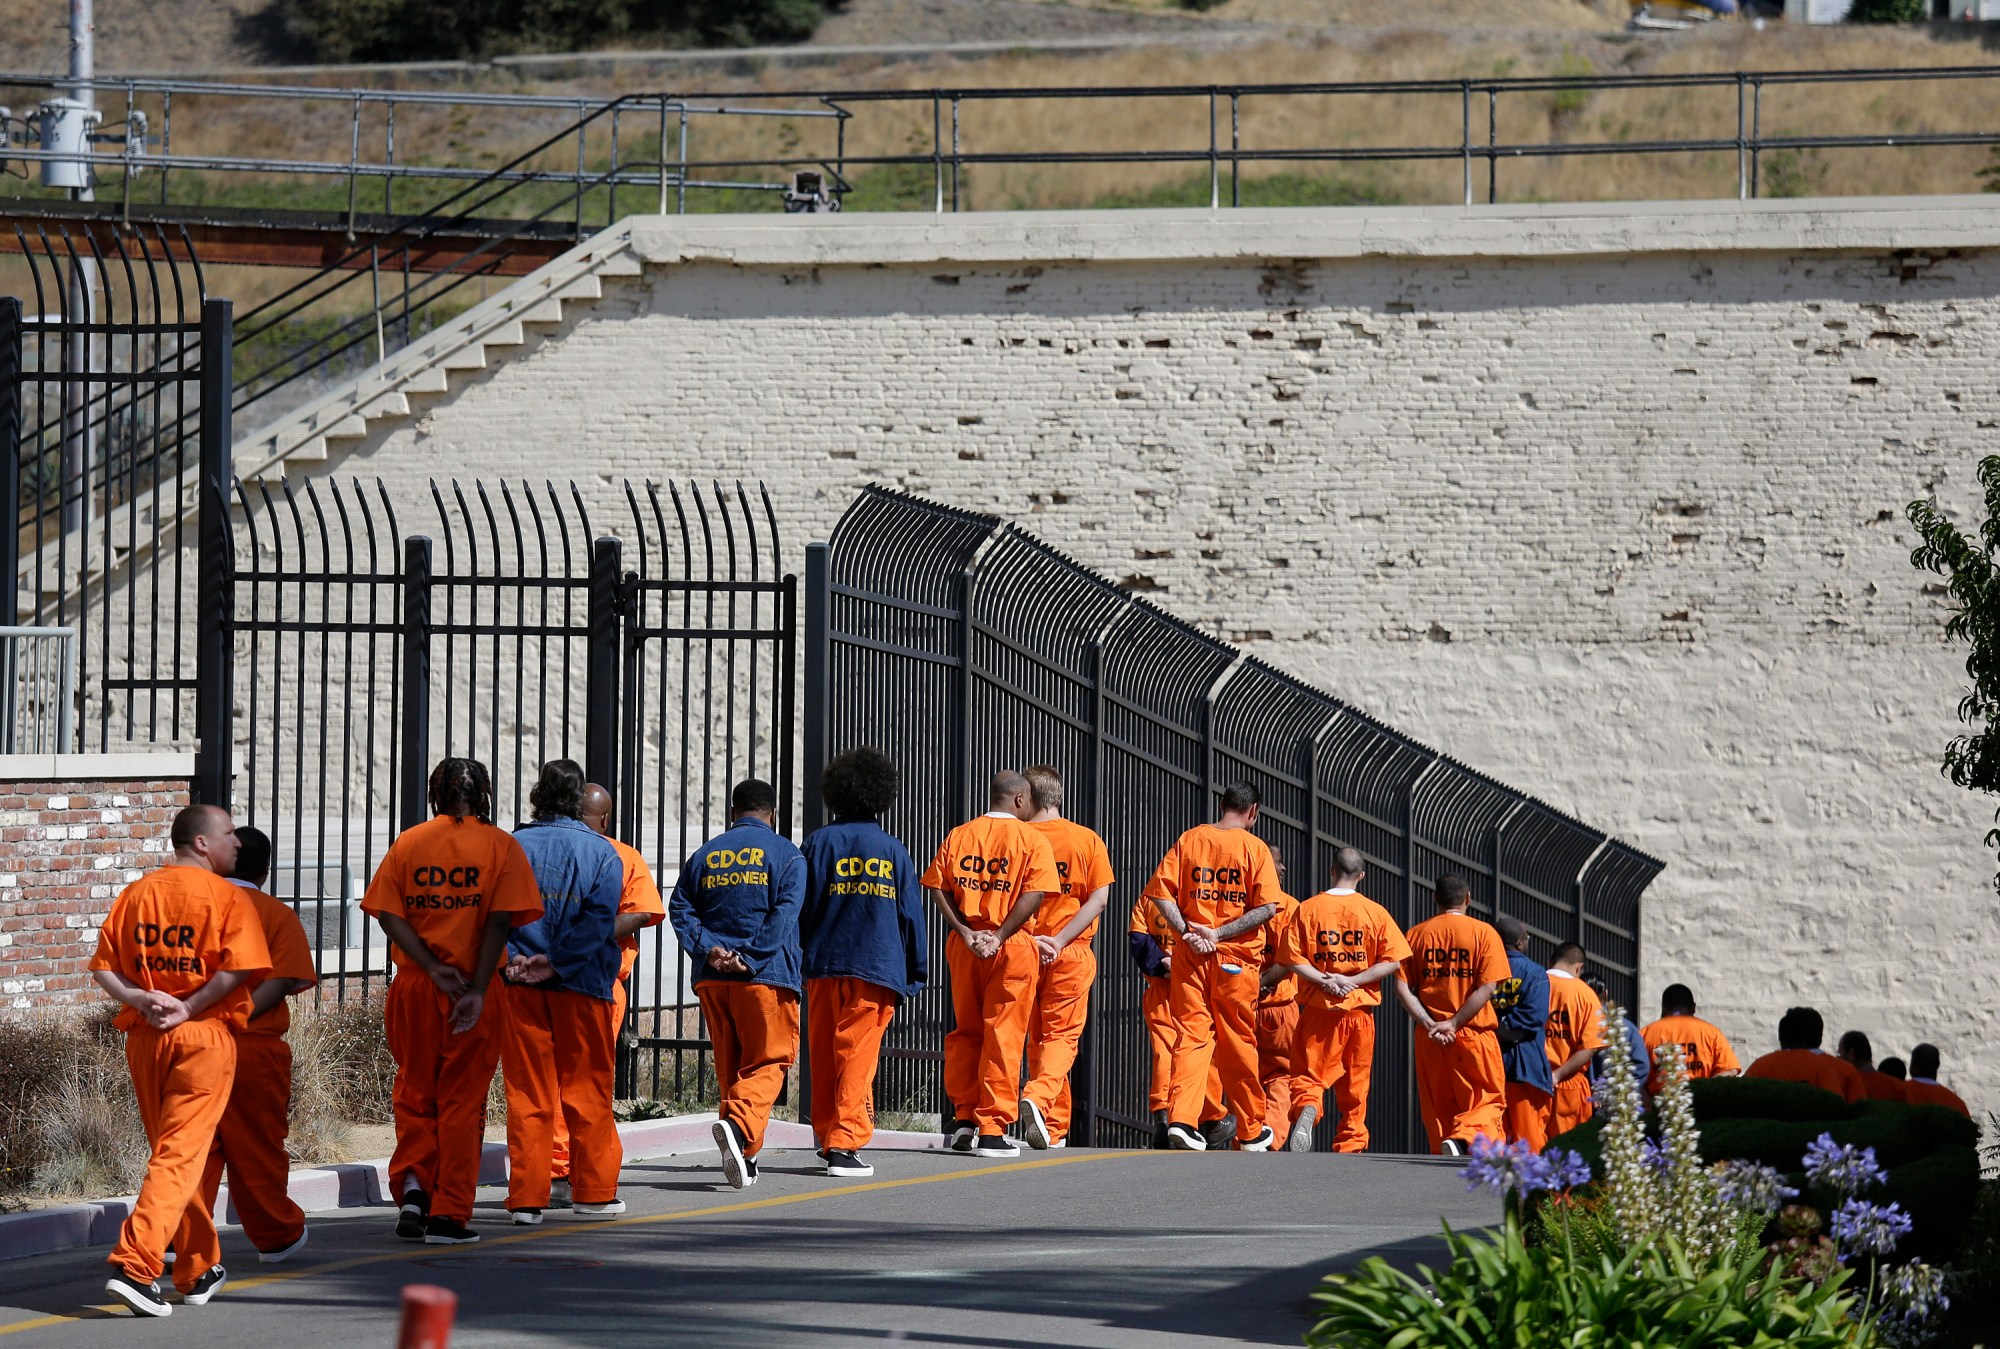 In this Aug. 16, 2016, file photo, a row of general population inmates walk in a line at San Quentin State Prison in San Quentin, Calif. California state prison officials say in a July 27, 2020, court filing that as many as 17,600 inmates are eligible for release due to the coronavirus, 70% more than previously estimated and a total that victims and police say includes dangerous criminals who should stay locked up. (AP Photo/Eric Risberg, File)